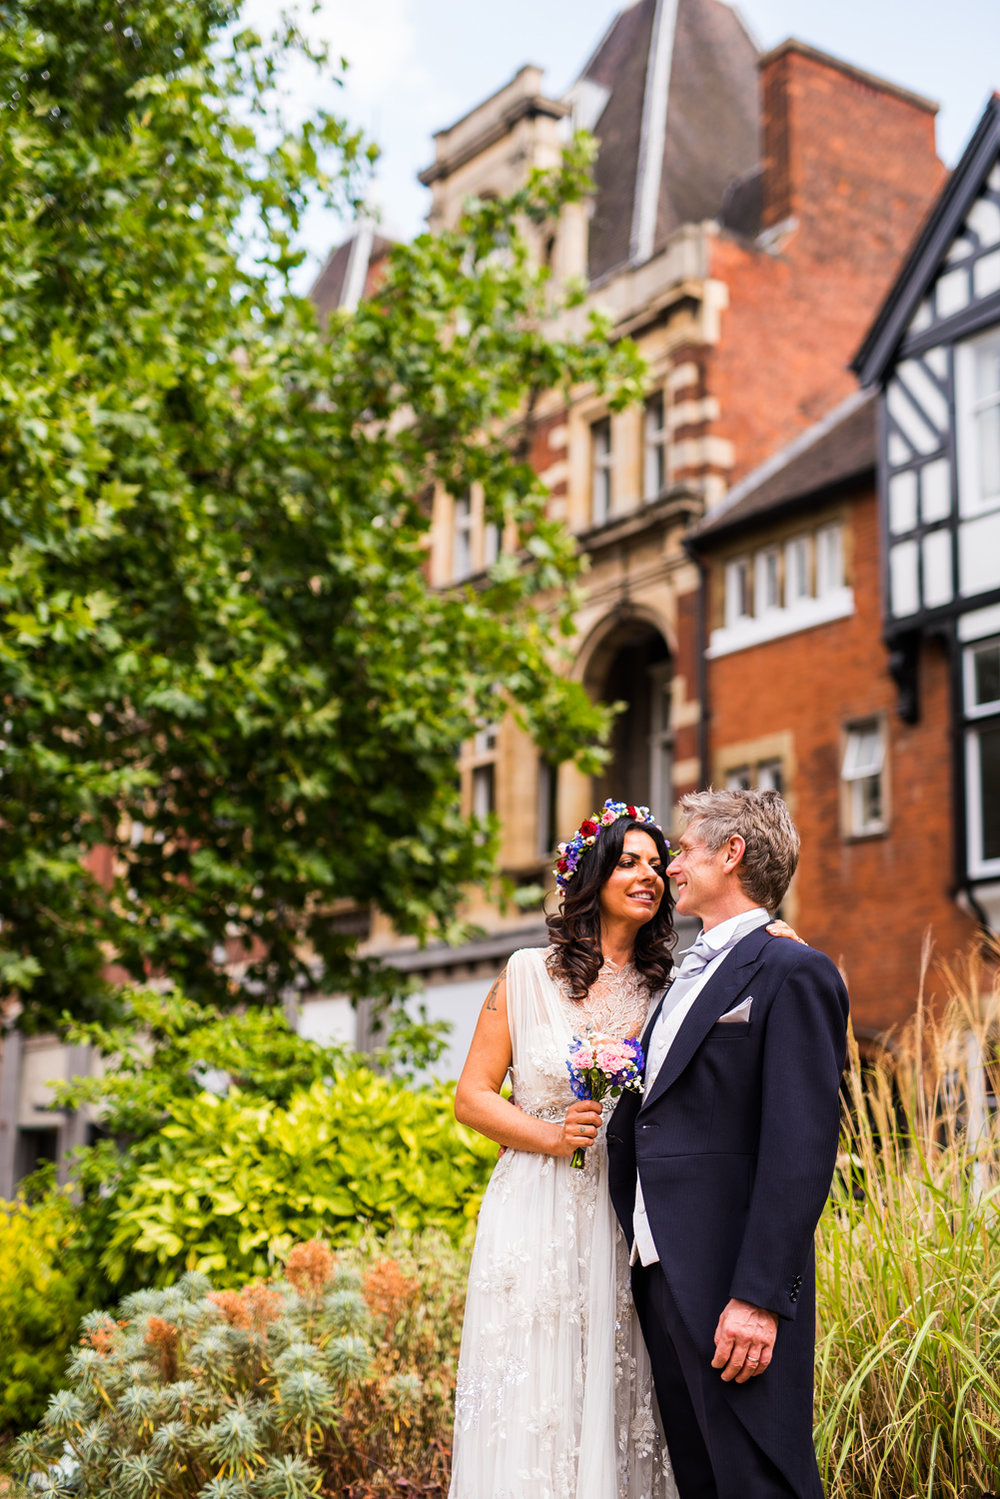 Nottingham wedding photographer150.jpg